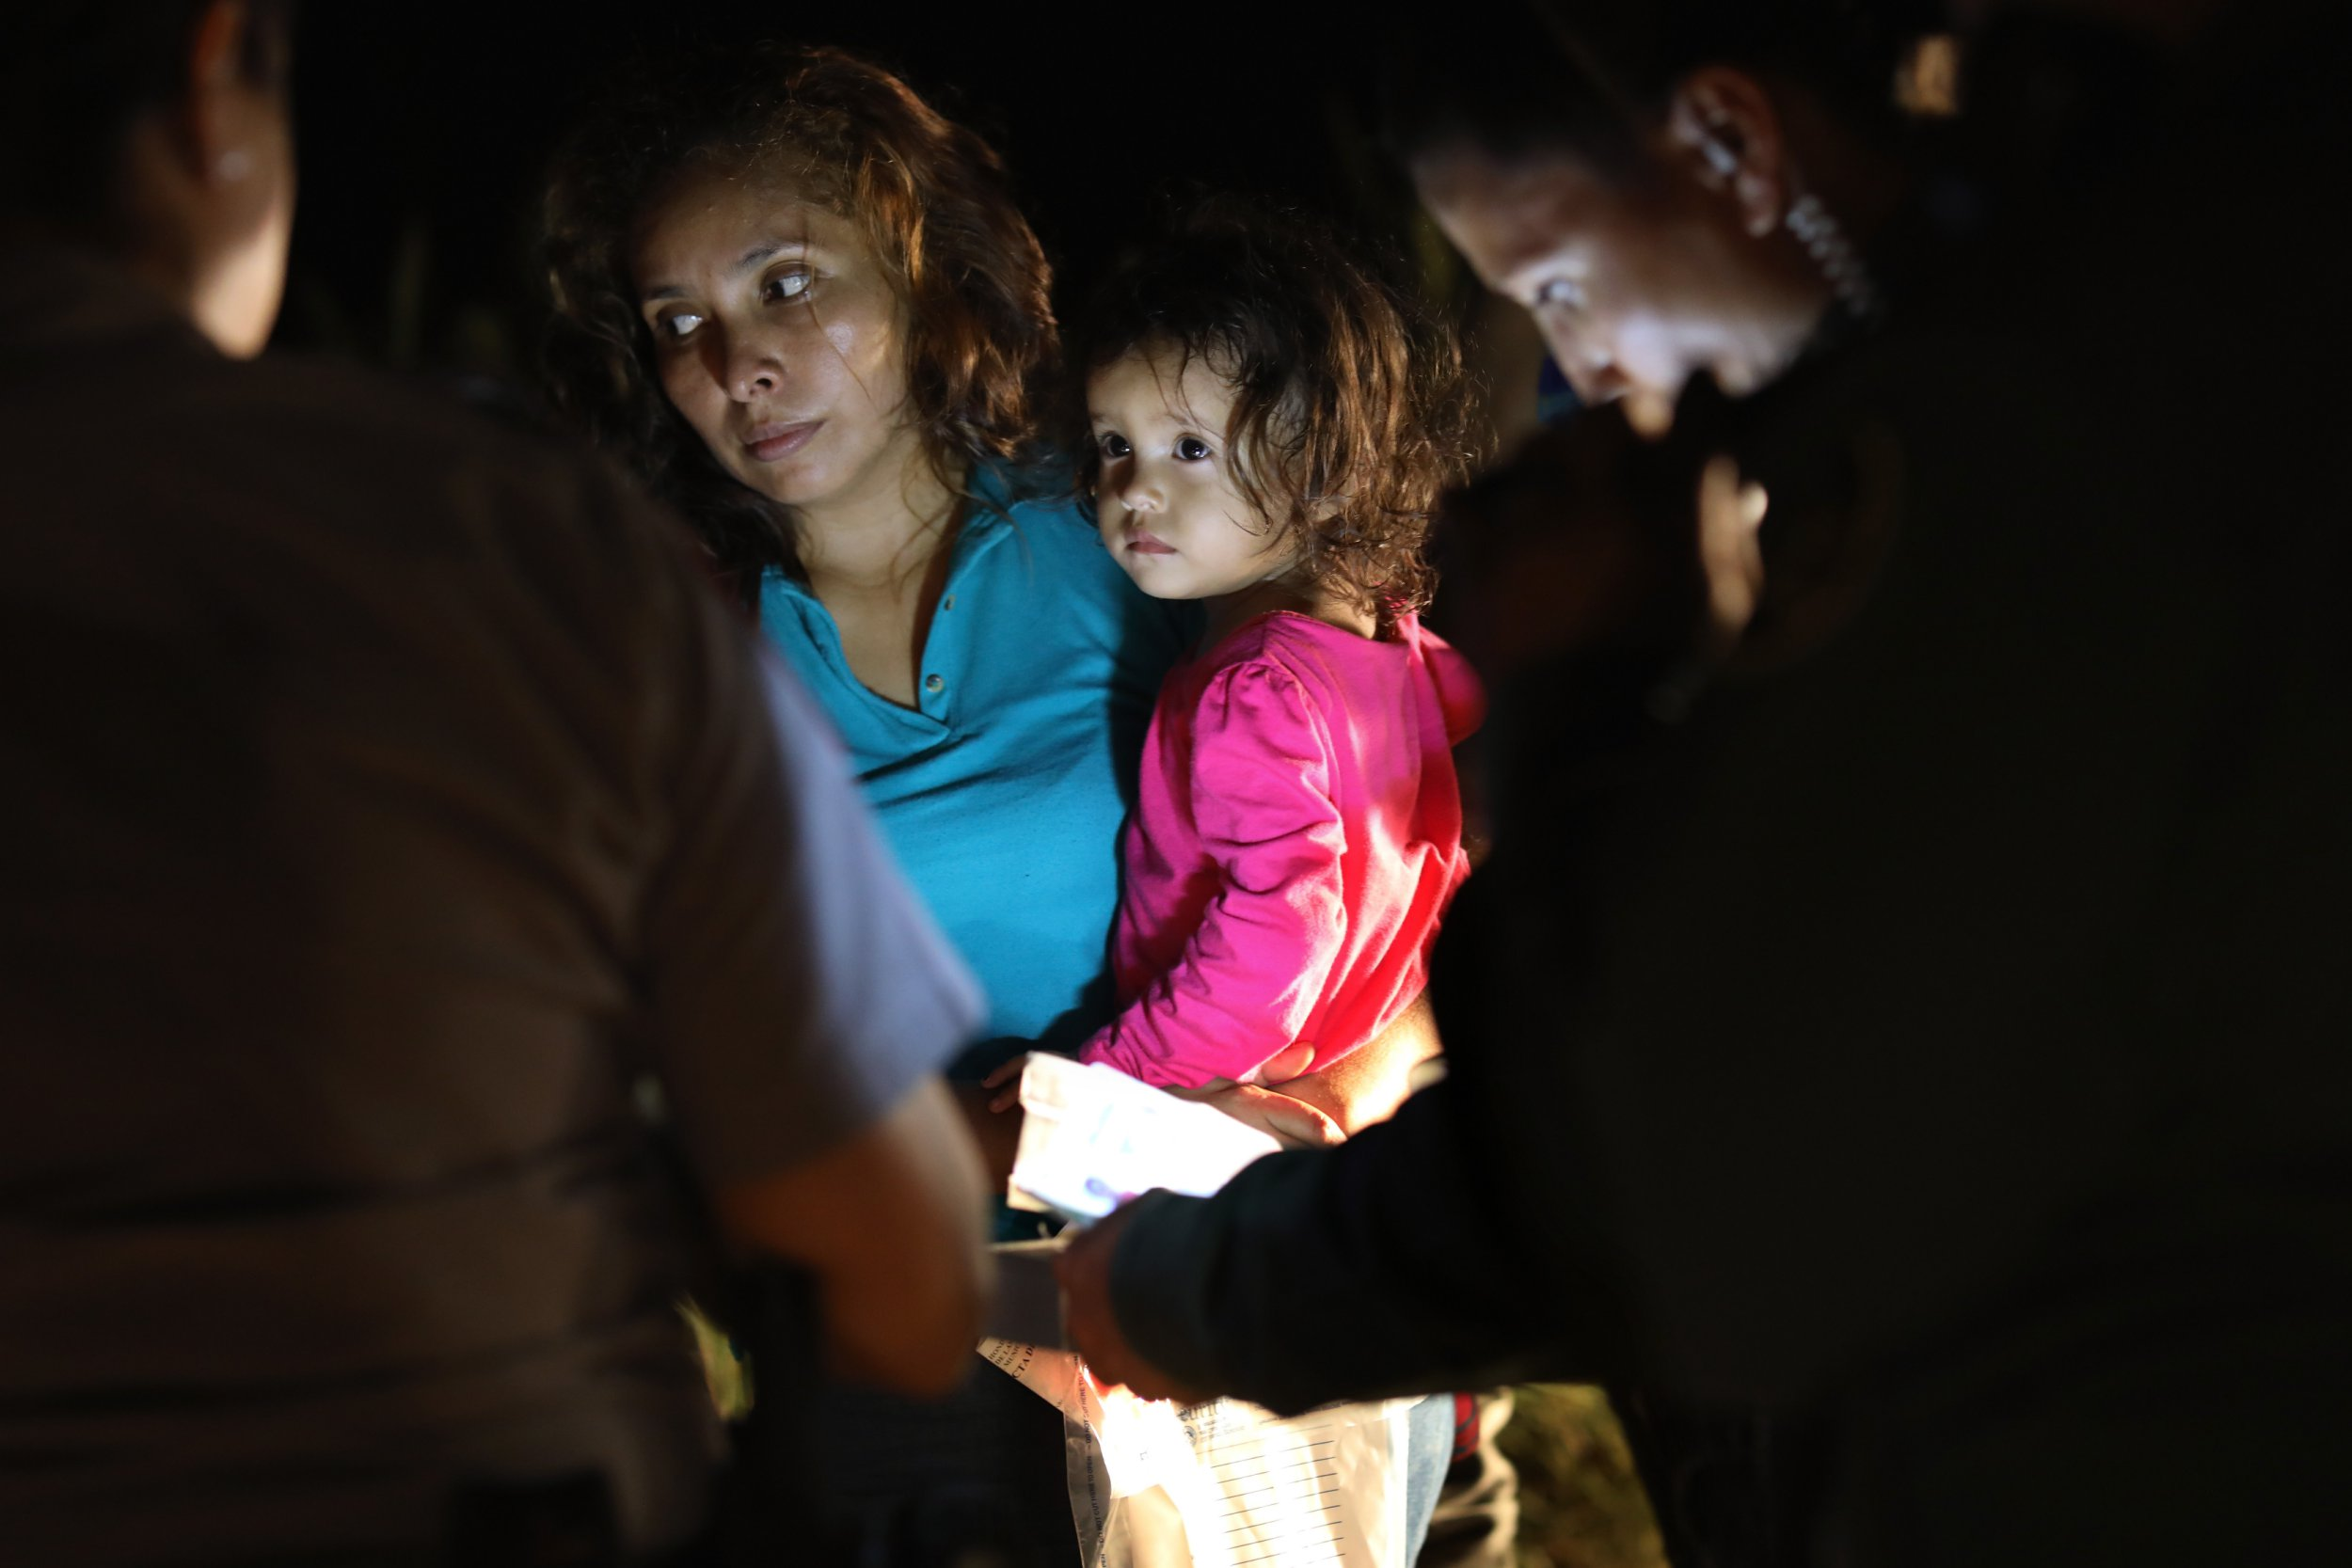 """MCALLEN, TX - JUNE 12: A Honduran mother holds her two-year-old as U.S. Border Patrol as agents review their papers near the U.S.-Mexico border on June 12, 2018 in McAllen, Texas. The asylum seekers had rafted across the Rio Grande from Mexico and were detained by U.S. Border Patrol agents before being sent to a processing center for possible separation. Customs and Border Protection (CBP) is executing the Trump administration's """"zero tolerance"""" policy towards undocumented immigrants. U.S. Attorney General Jeff Sessions also said that domestic and gang violence in immigrants' country of origin would no longer qualify them for political asylum status. (Photo by John Moore/Getty Images)"""